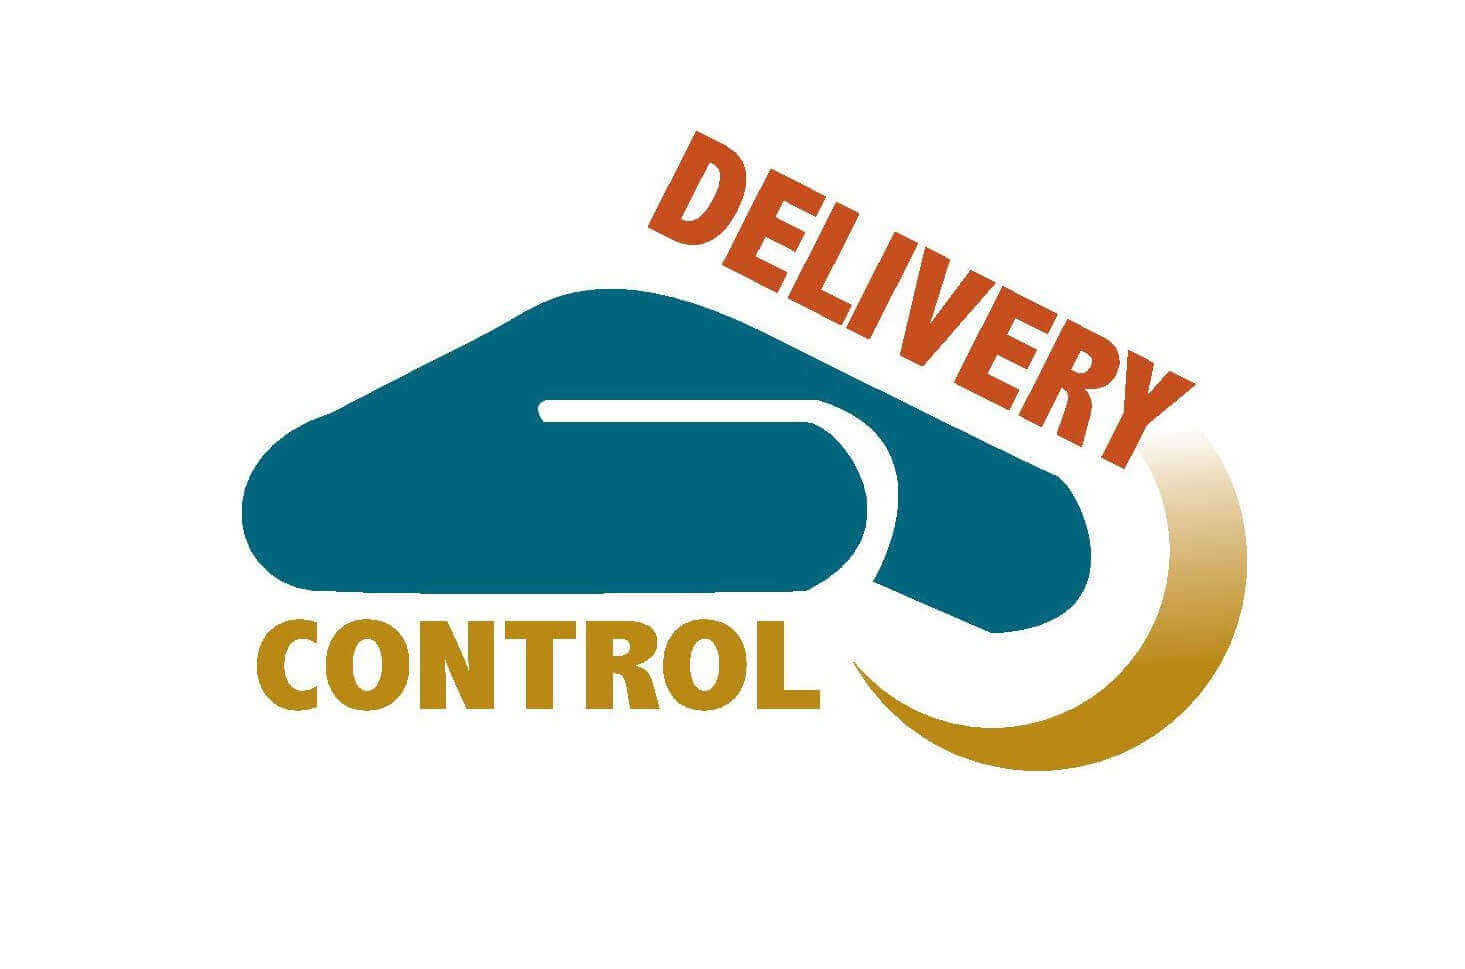 7e3a4bddfdc Delivery Control | Σύστημα παραγγελιοληψίας delivery και Take Away